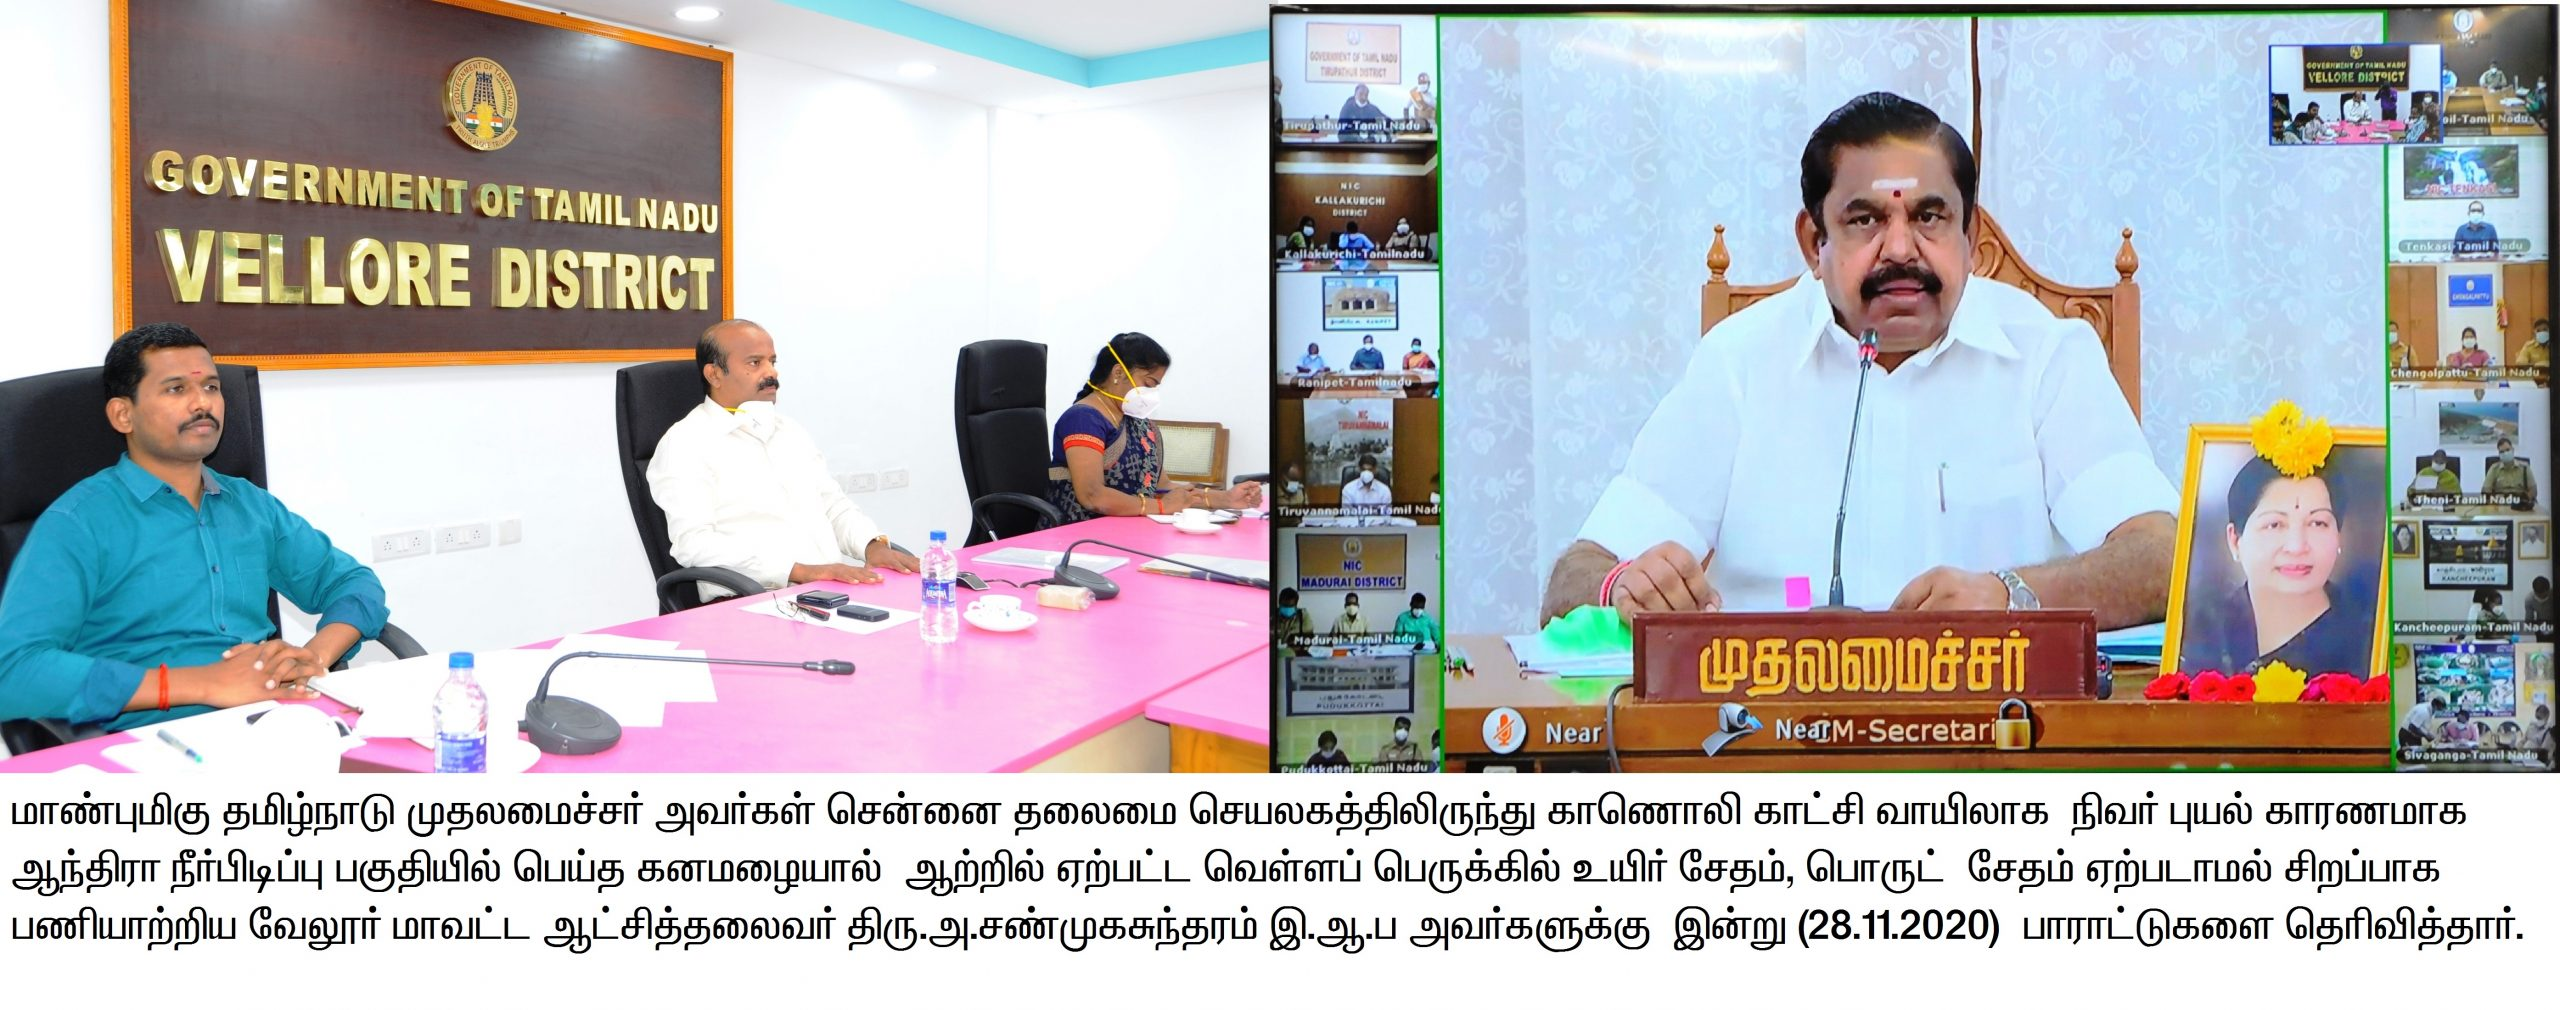 Corona Virus Preventive Methods Discussion through Video conference With Honorable Chief Minister Edapadi K.Palanisami 28-11-2020